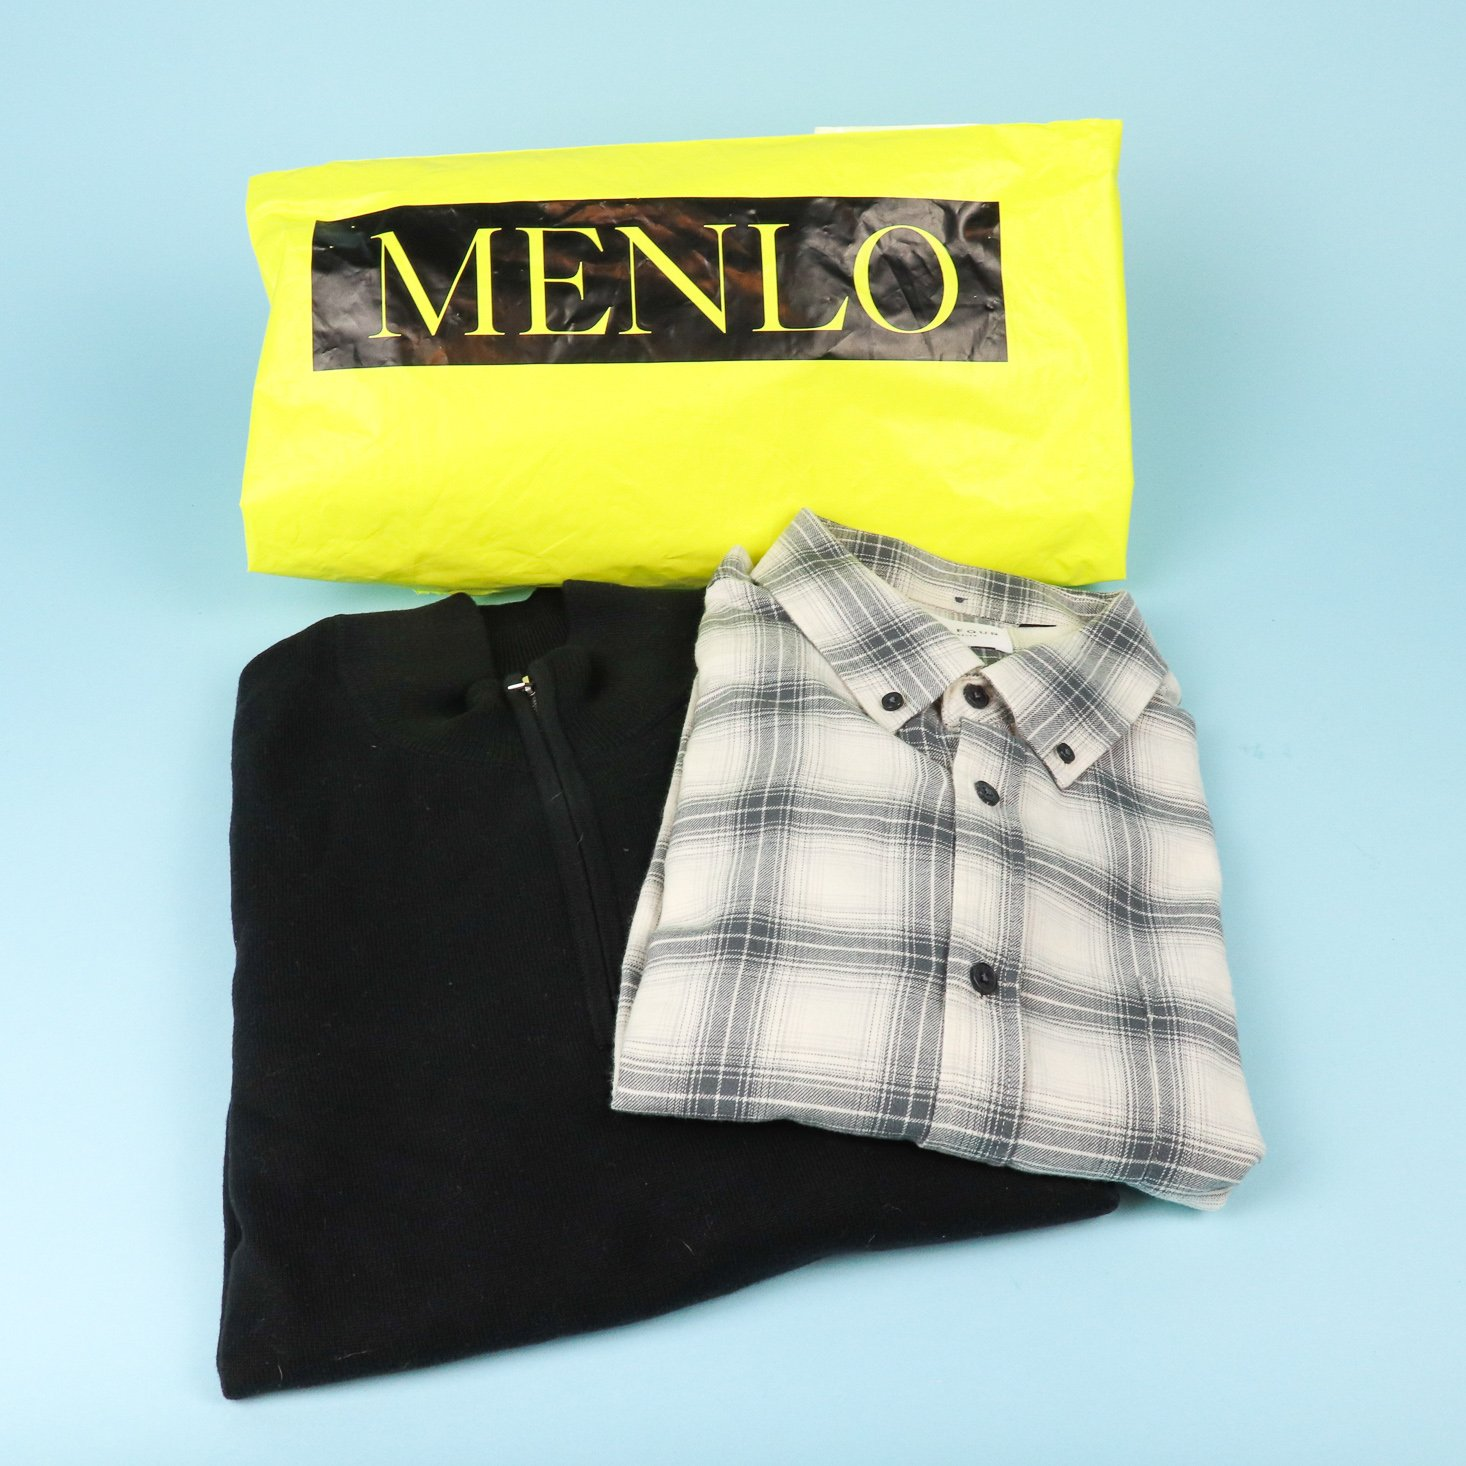 Get Your First Menlo Club Box For Only $25